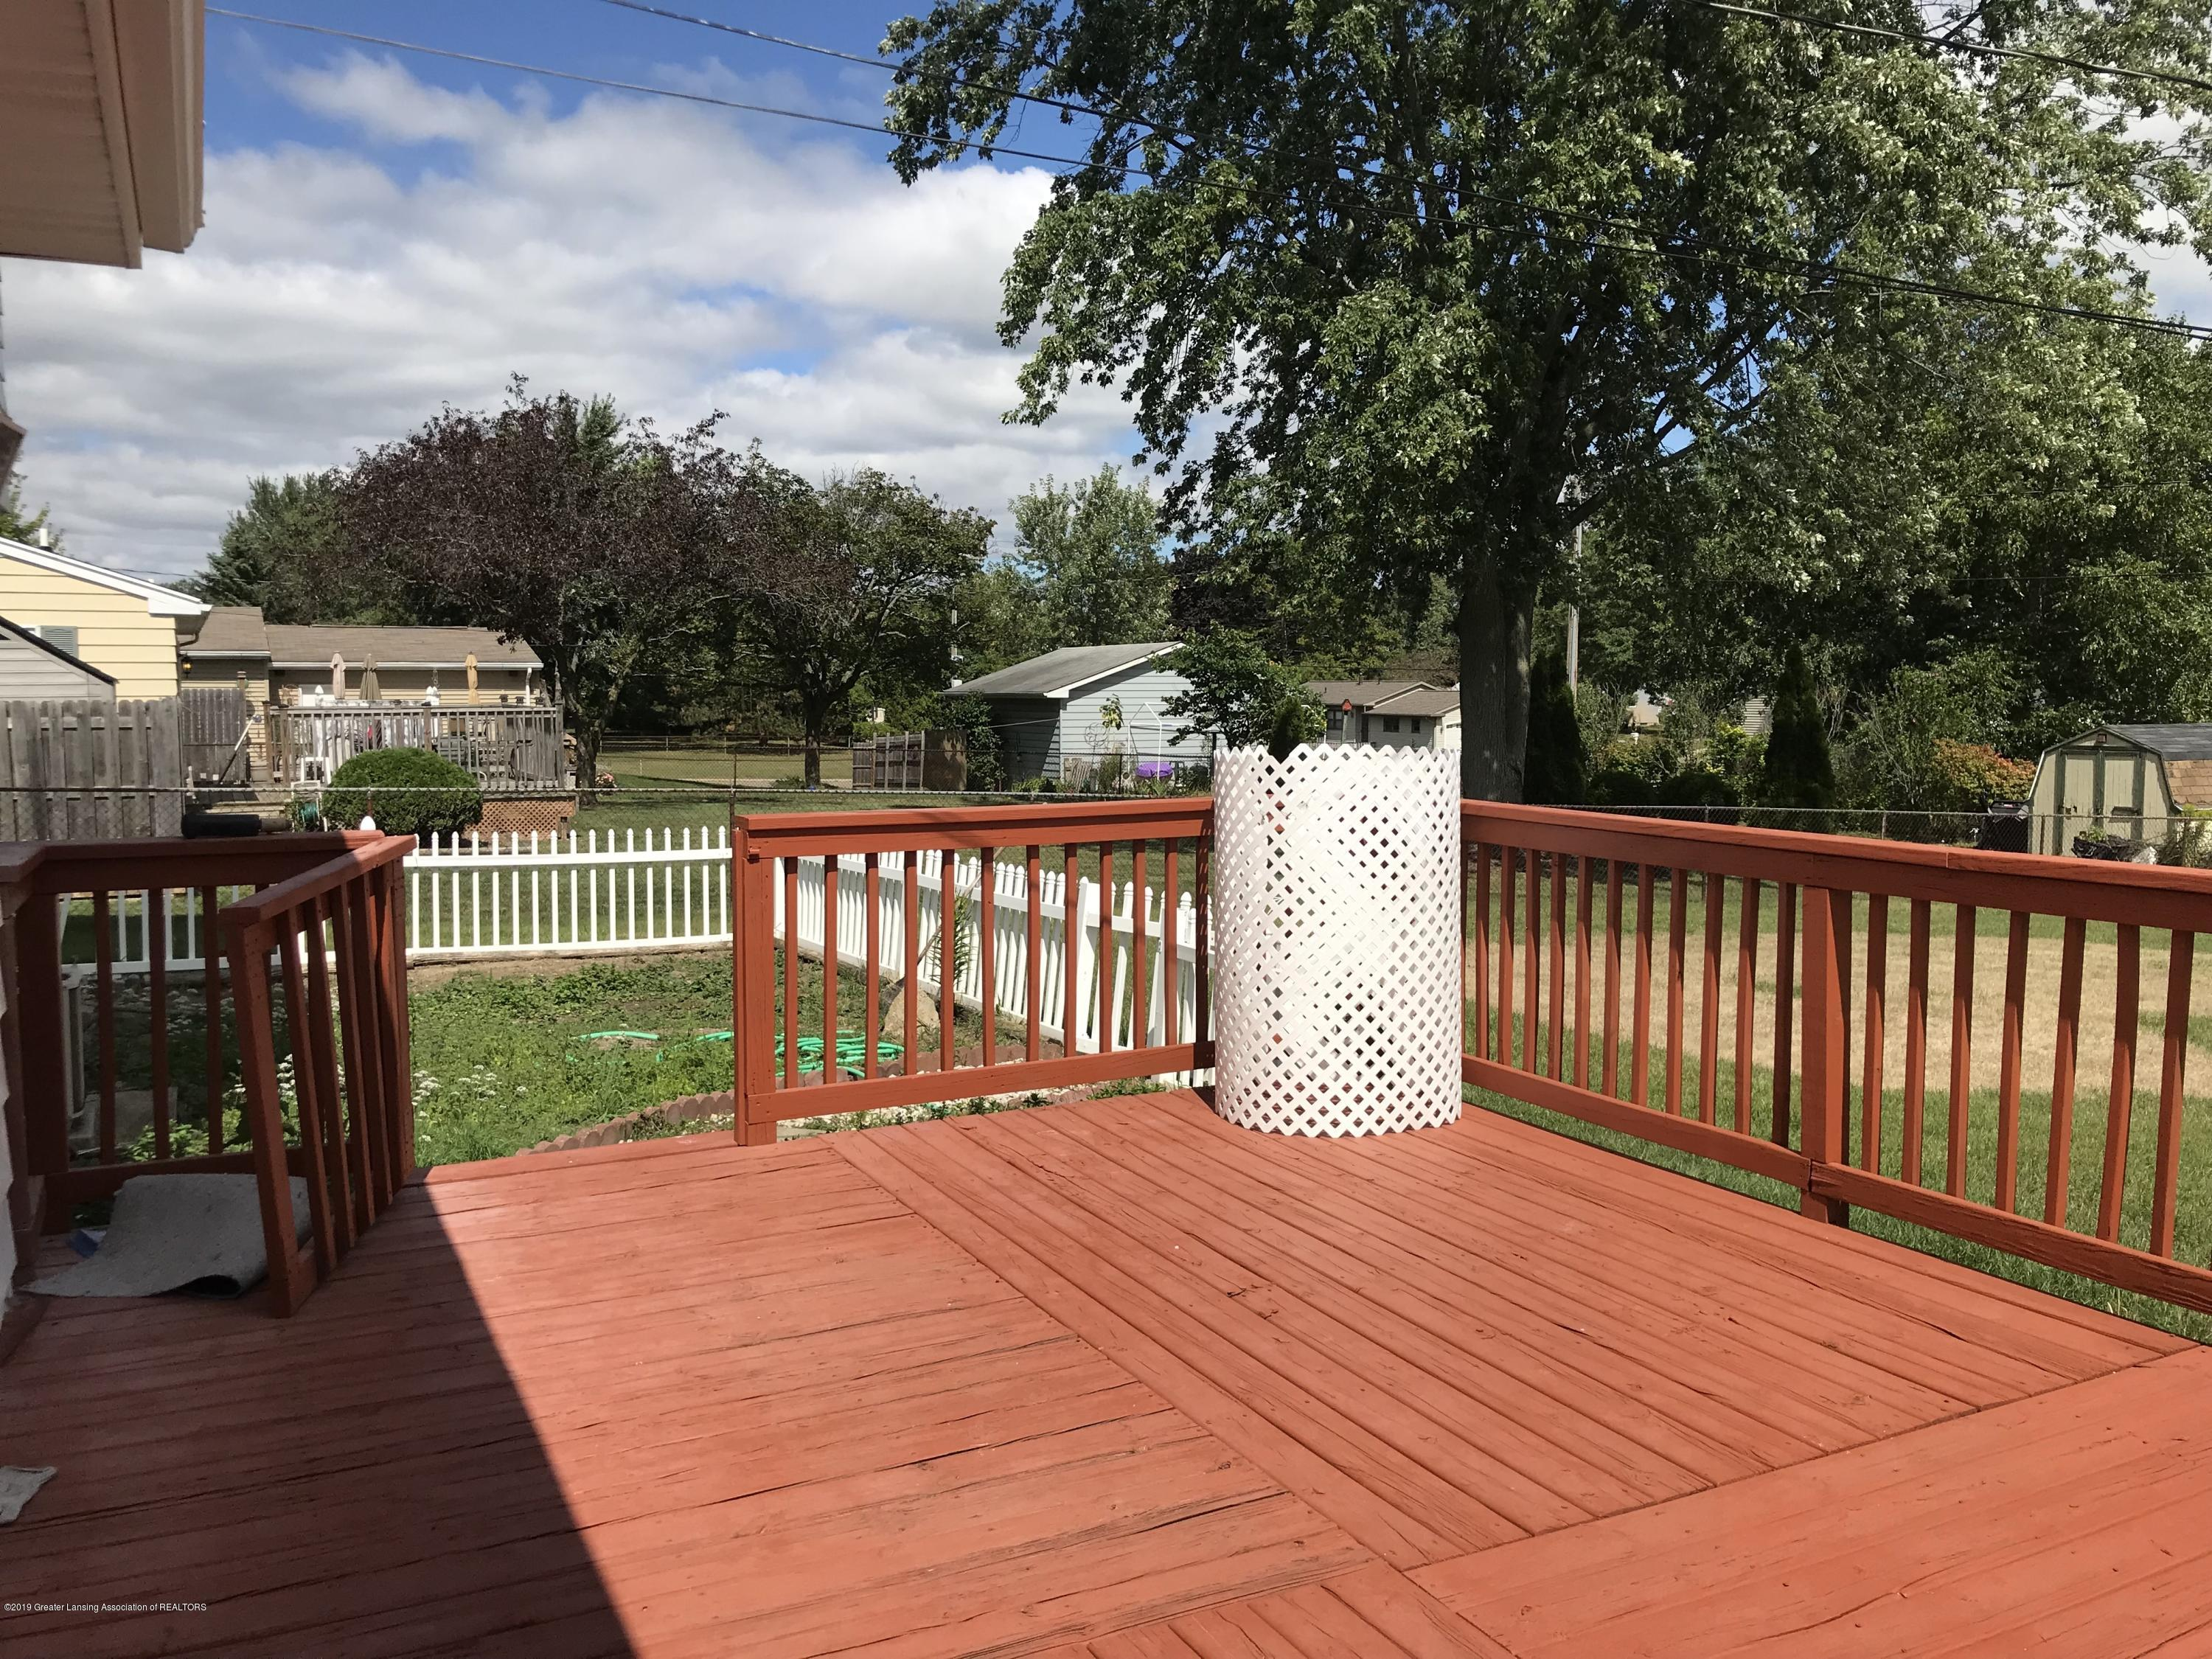 517 Harvest Ln - Deck and vegetable garden - 37